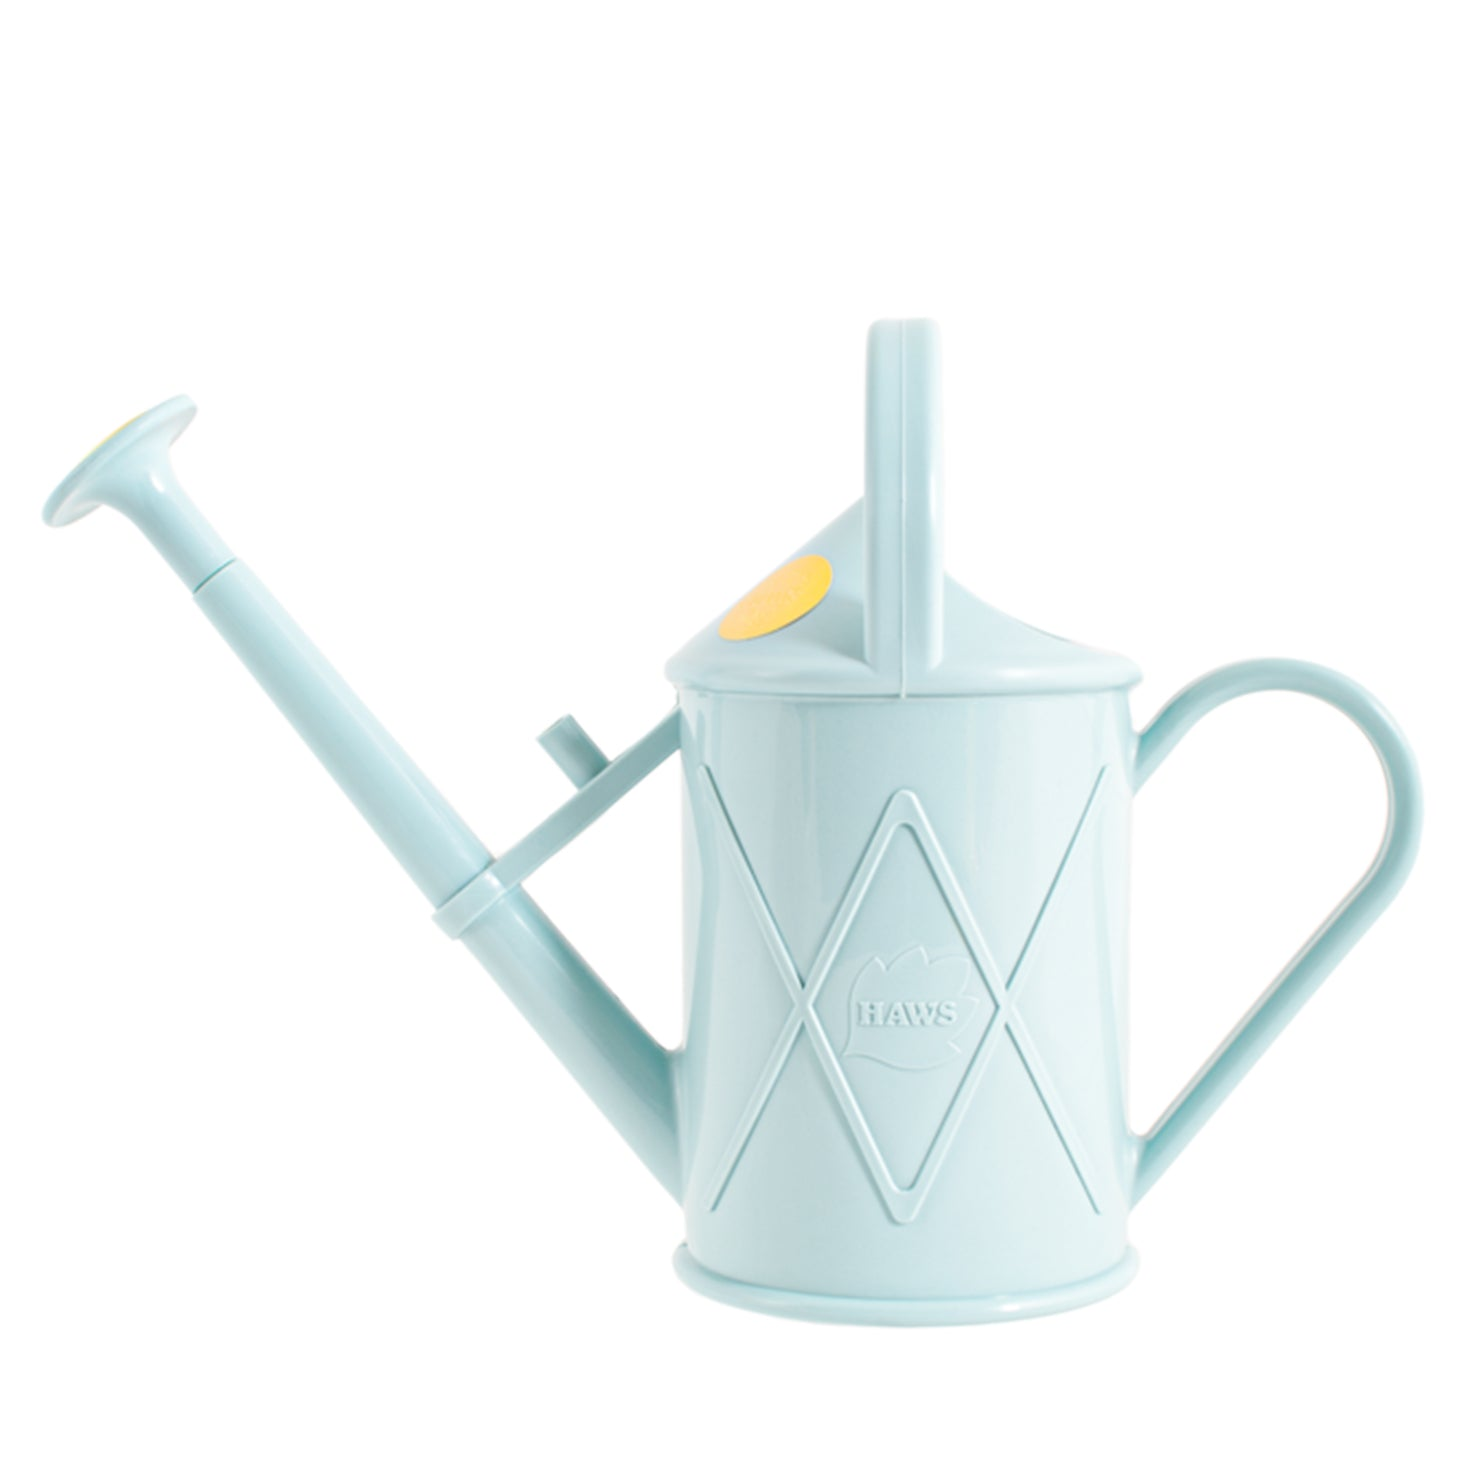 Haws Heritage Watering Can - Duck Egg Blue